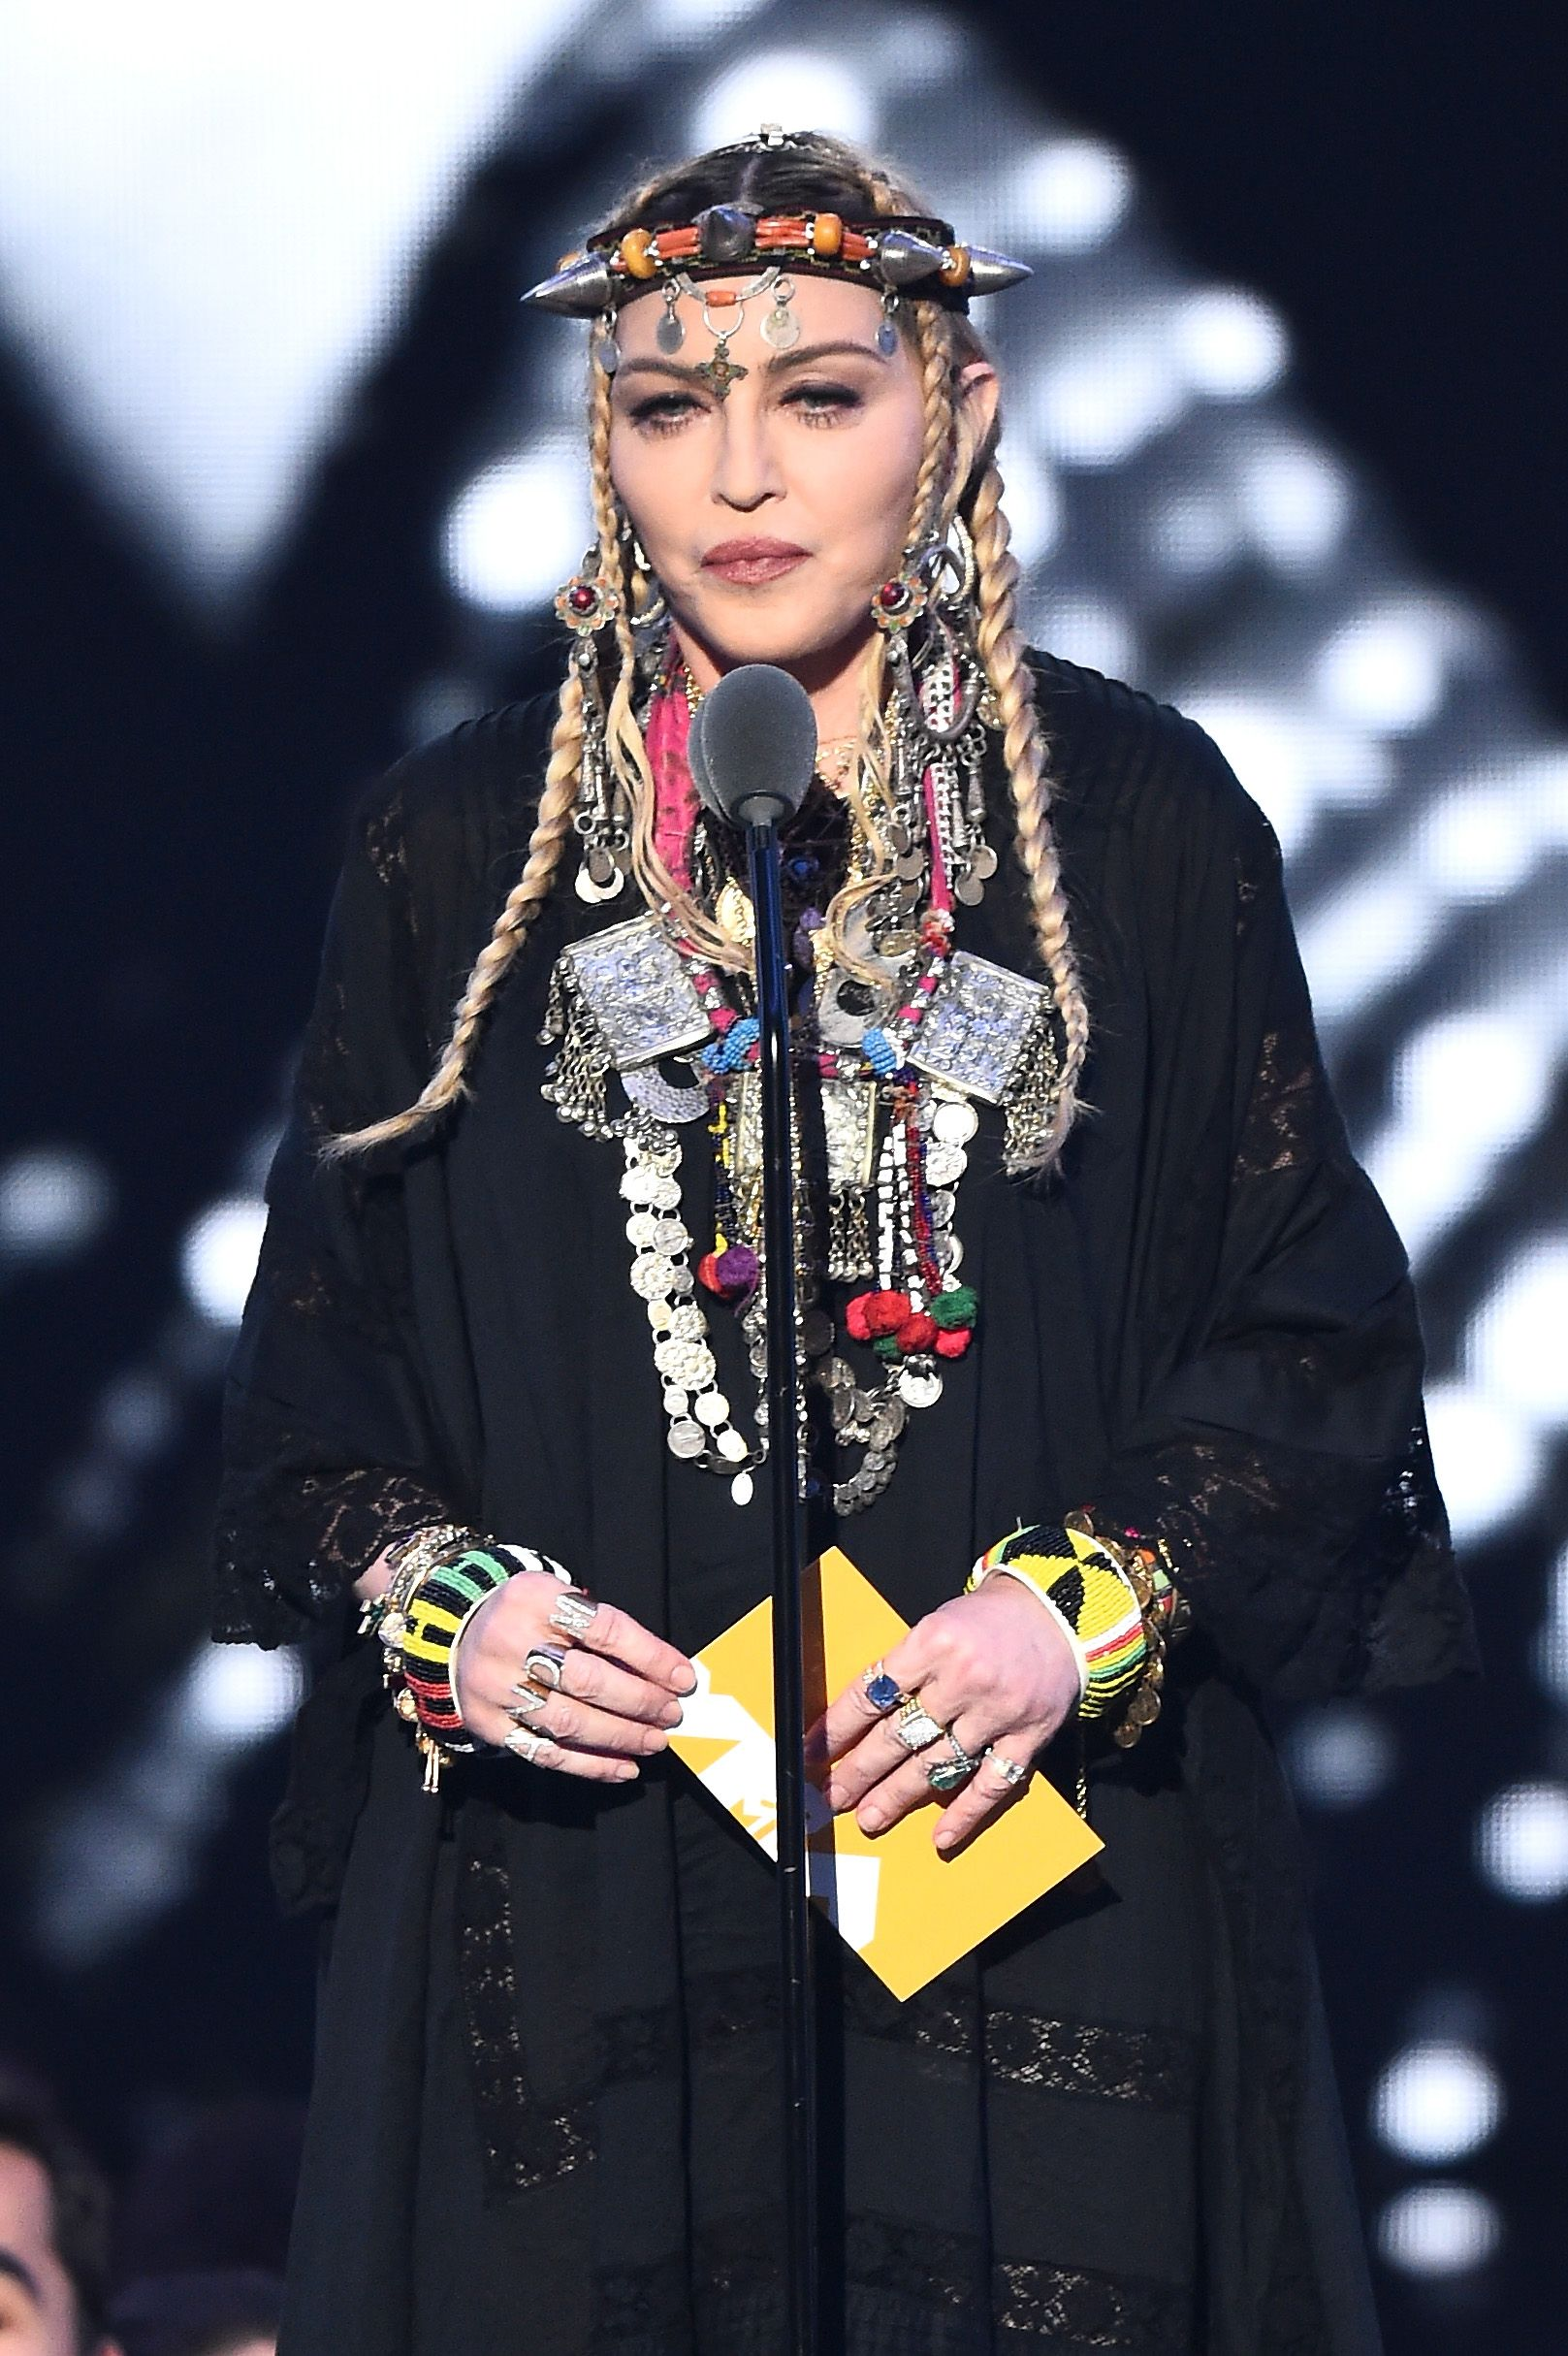 VMAs: Madonna bashed over Aretha Franklin 'tribute'